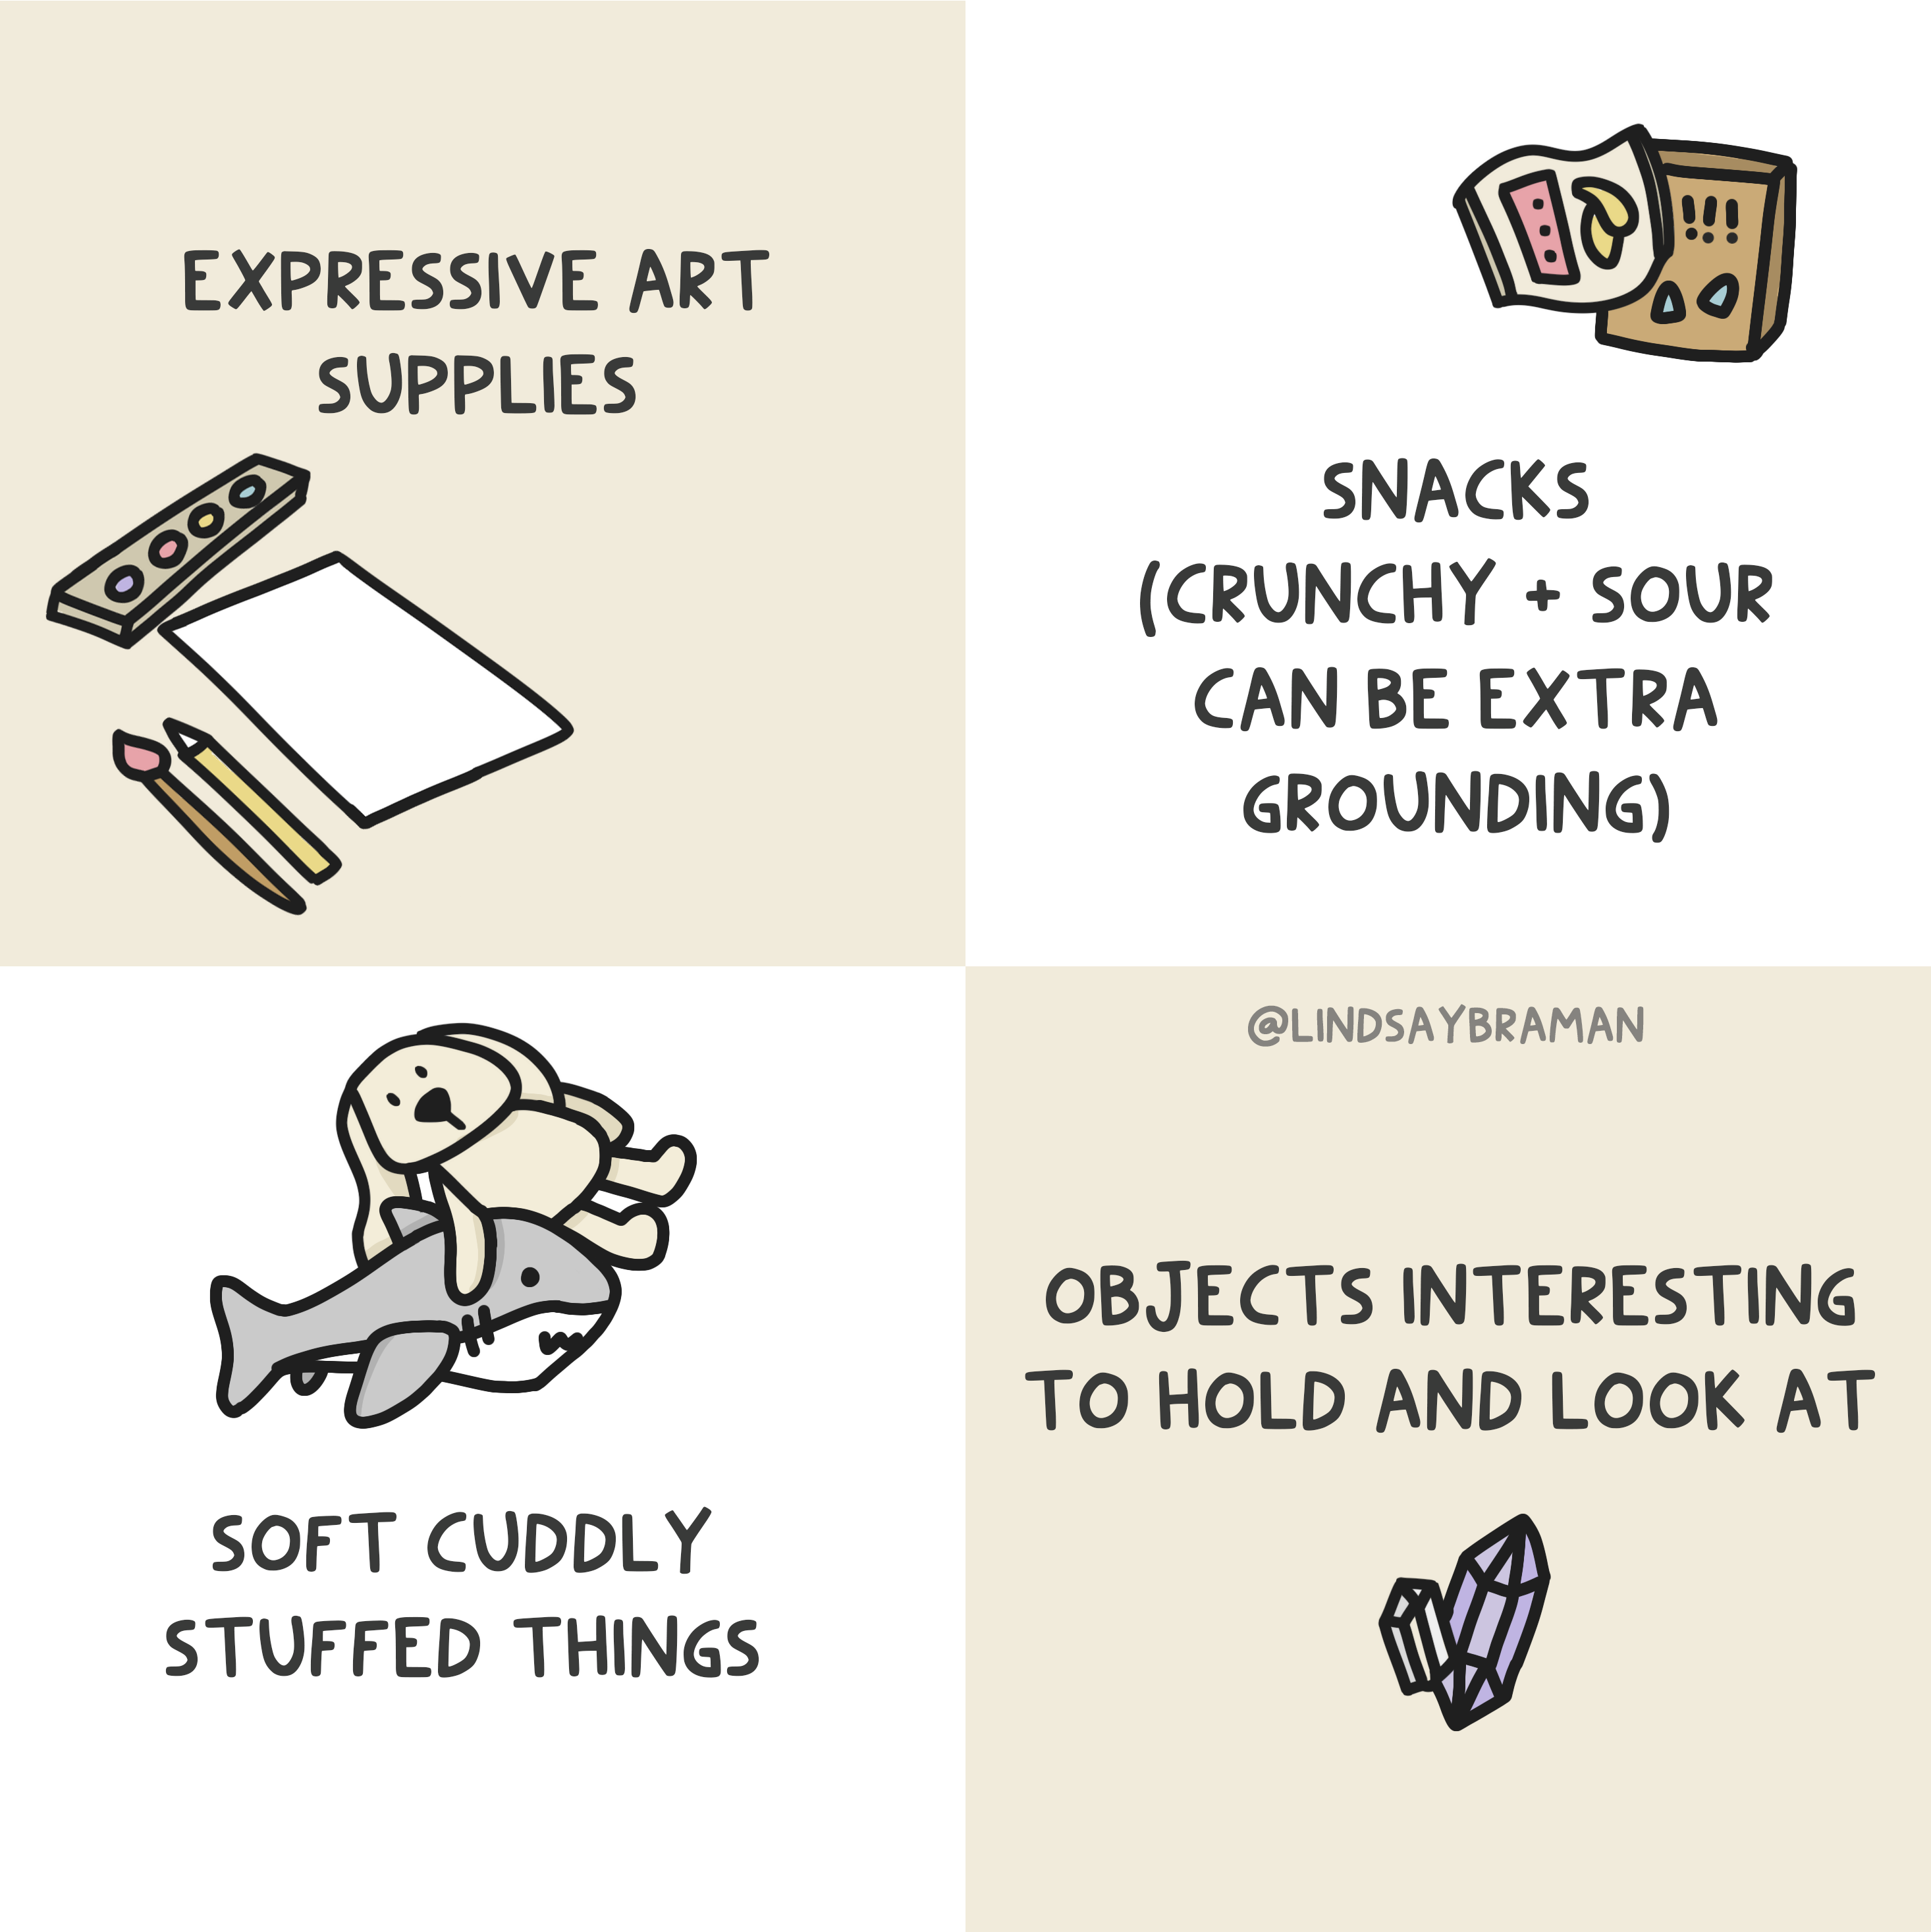 """Quad-separated image with alternating background colors of white and beige. On the first beige square (in the upper left corner) is a drawing of art supplies. Above is written, """"Expressive art supplies."""" The next image (in the upper right square with a white background) is a drawing of snack packages. Underneath is written """"Snacks (crunchy and sour can be extra grounding)."""" In the below (bottom right square with a beige background) is a drawing of rocks and gems. Above the drawing is written """"Objects interesting to hold and look at."""" In the final square (bottom left with a white background) is a drawing of two stuffed animals- a shark and a bear. Underneath is written """"Soft cuddly stuffed things."""""""